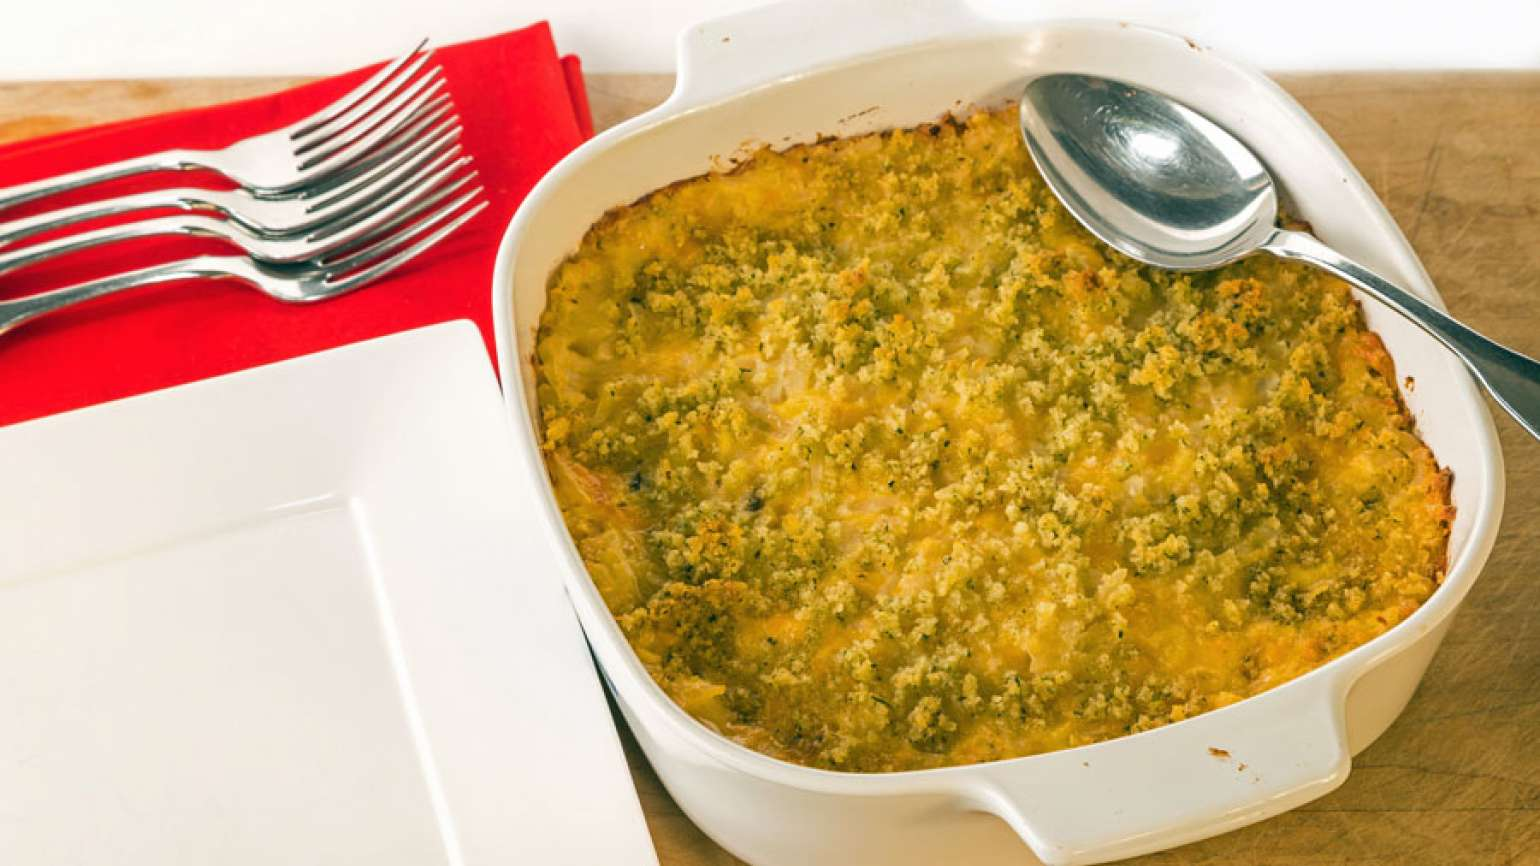 Earth angel recipe: Crabmeat au gratin